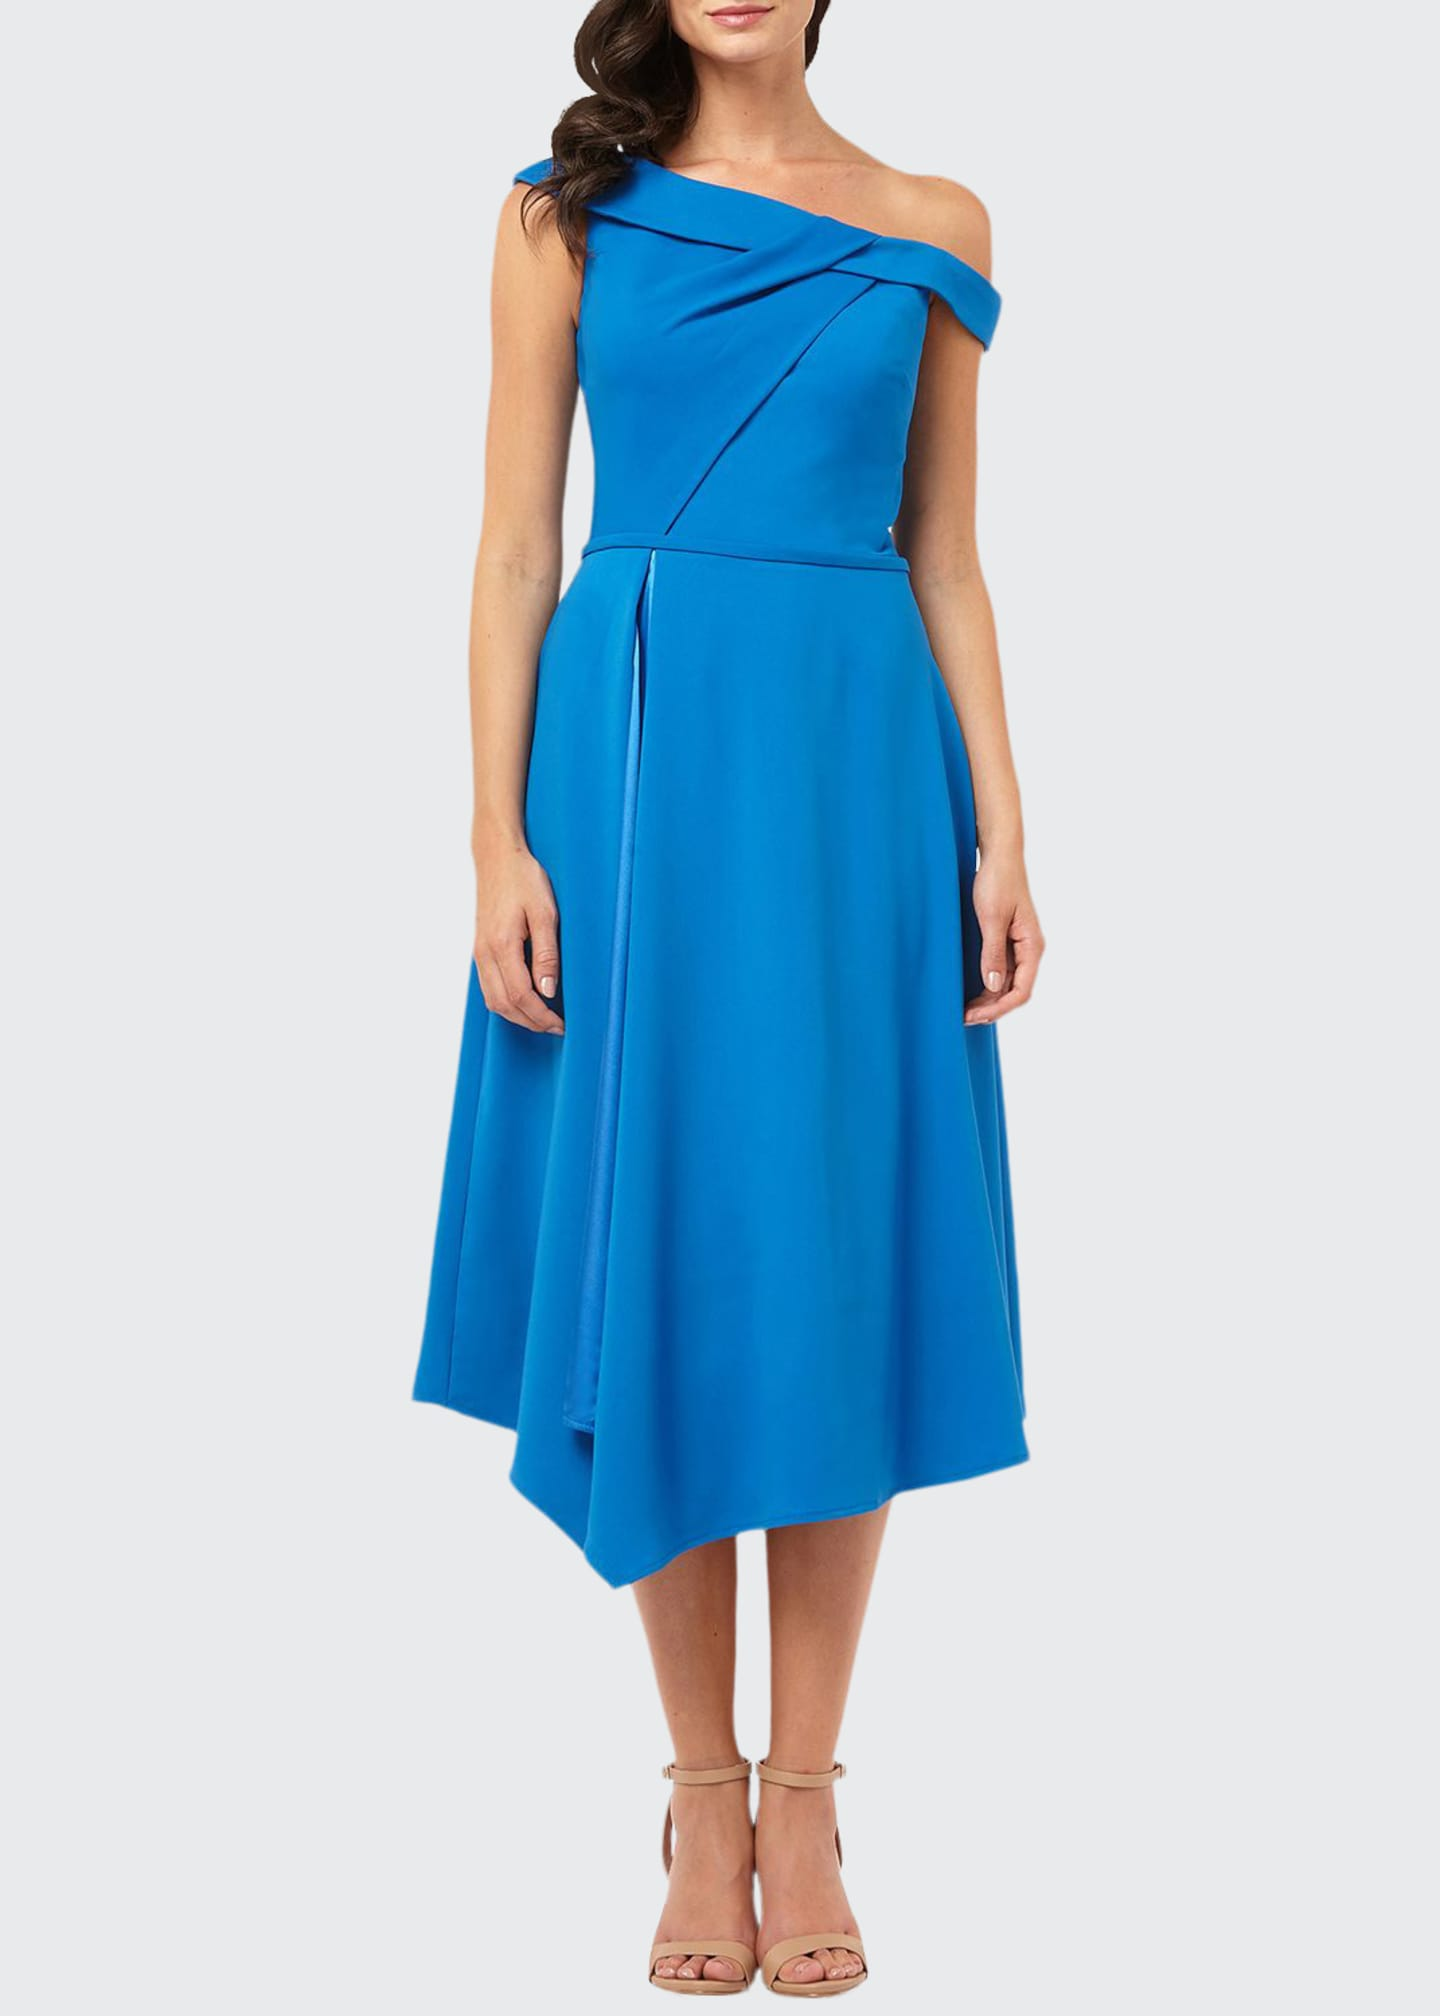 Carmen Marc Valvo Infusion One-Shoulder Asymmetric Satin-Lined